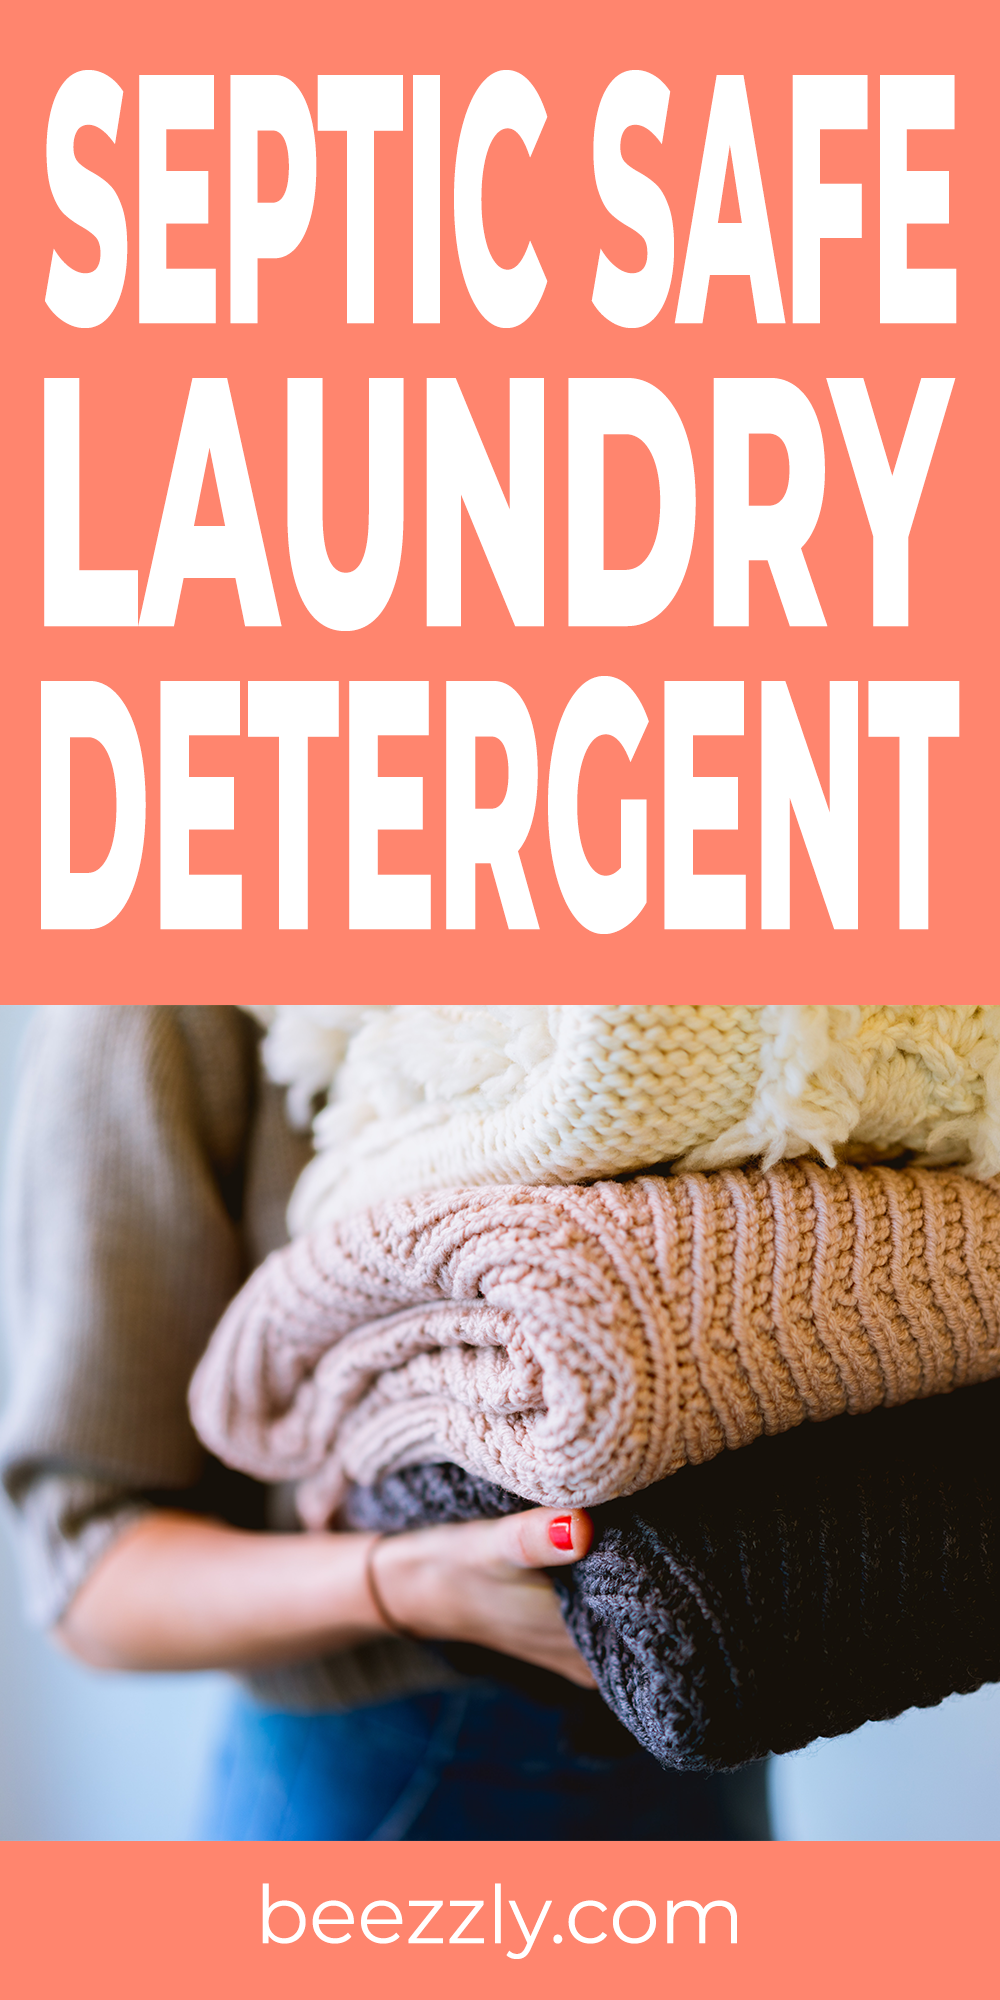 What Is The Best Laundry Detergent For Septic Systems To Avoid